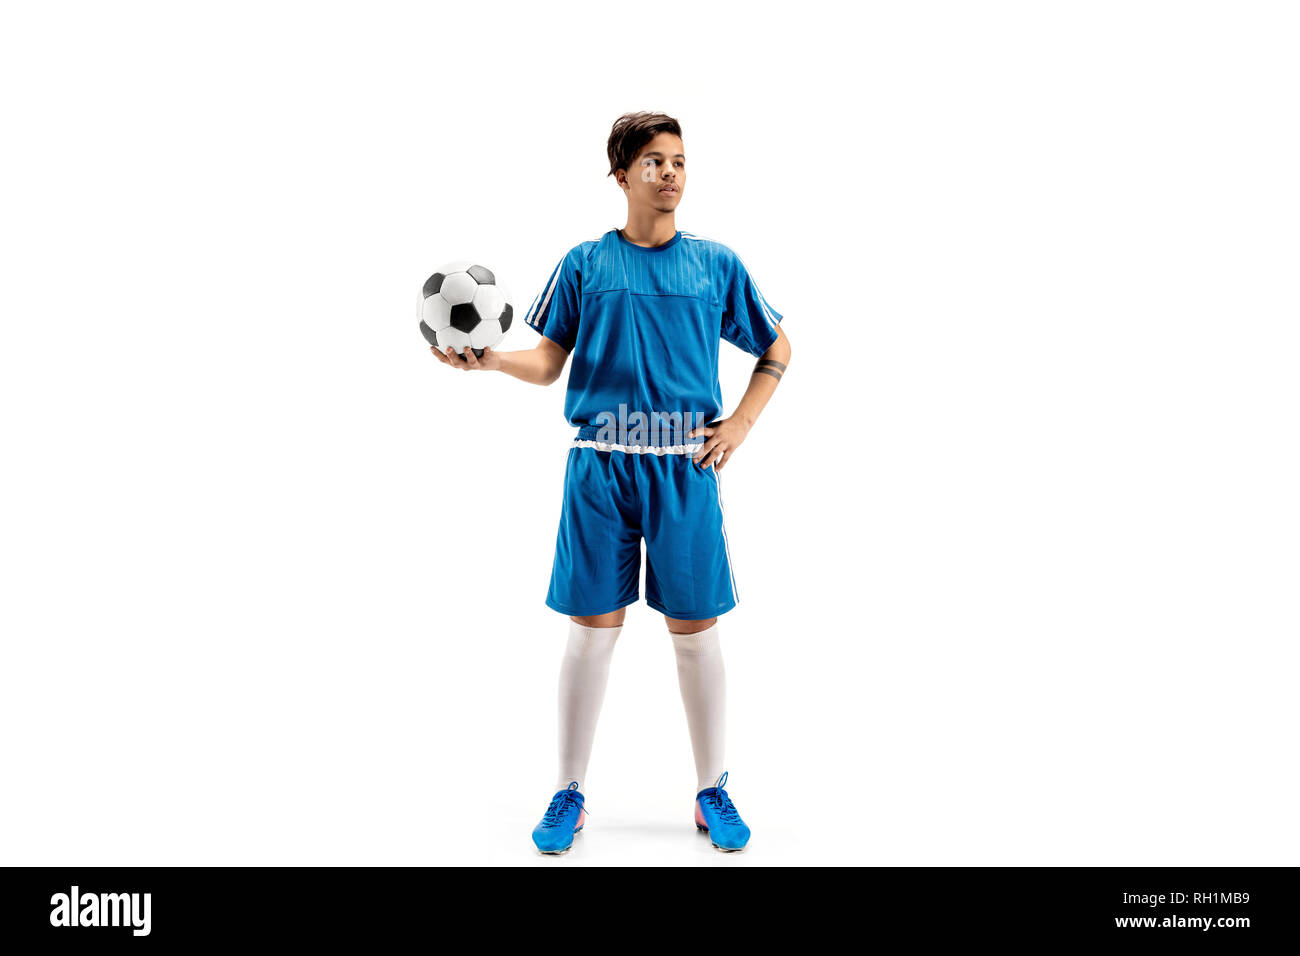 Young fit boy with soccer ball standing isolated on white as winner. The football soccer player on studio background. Stock Photo